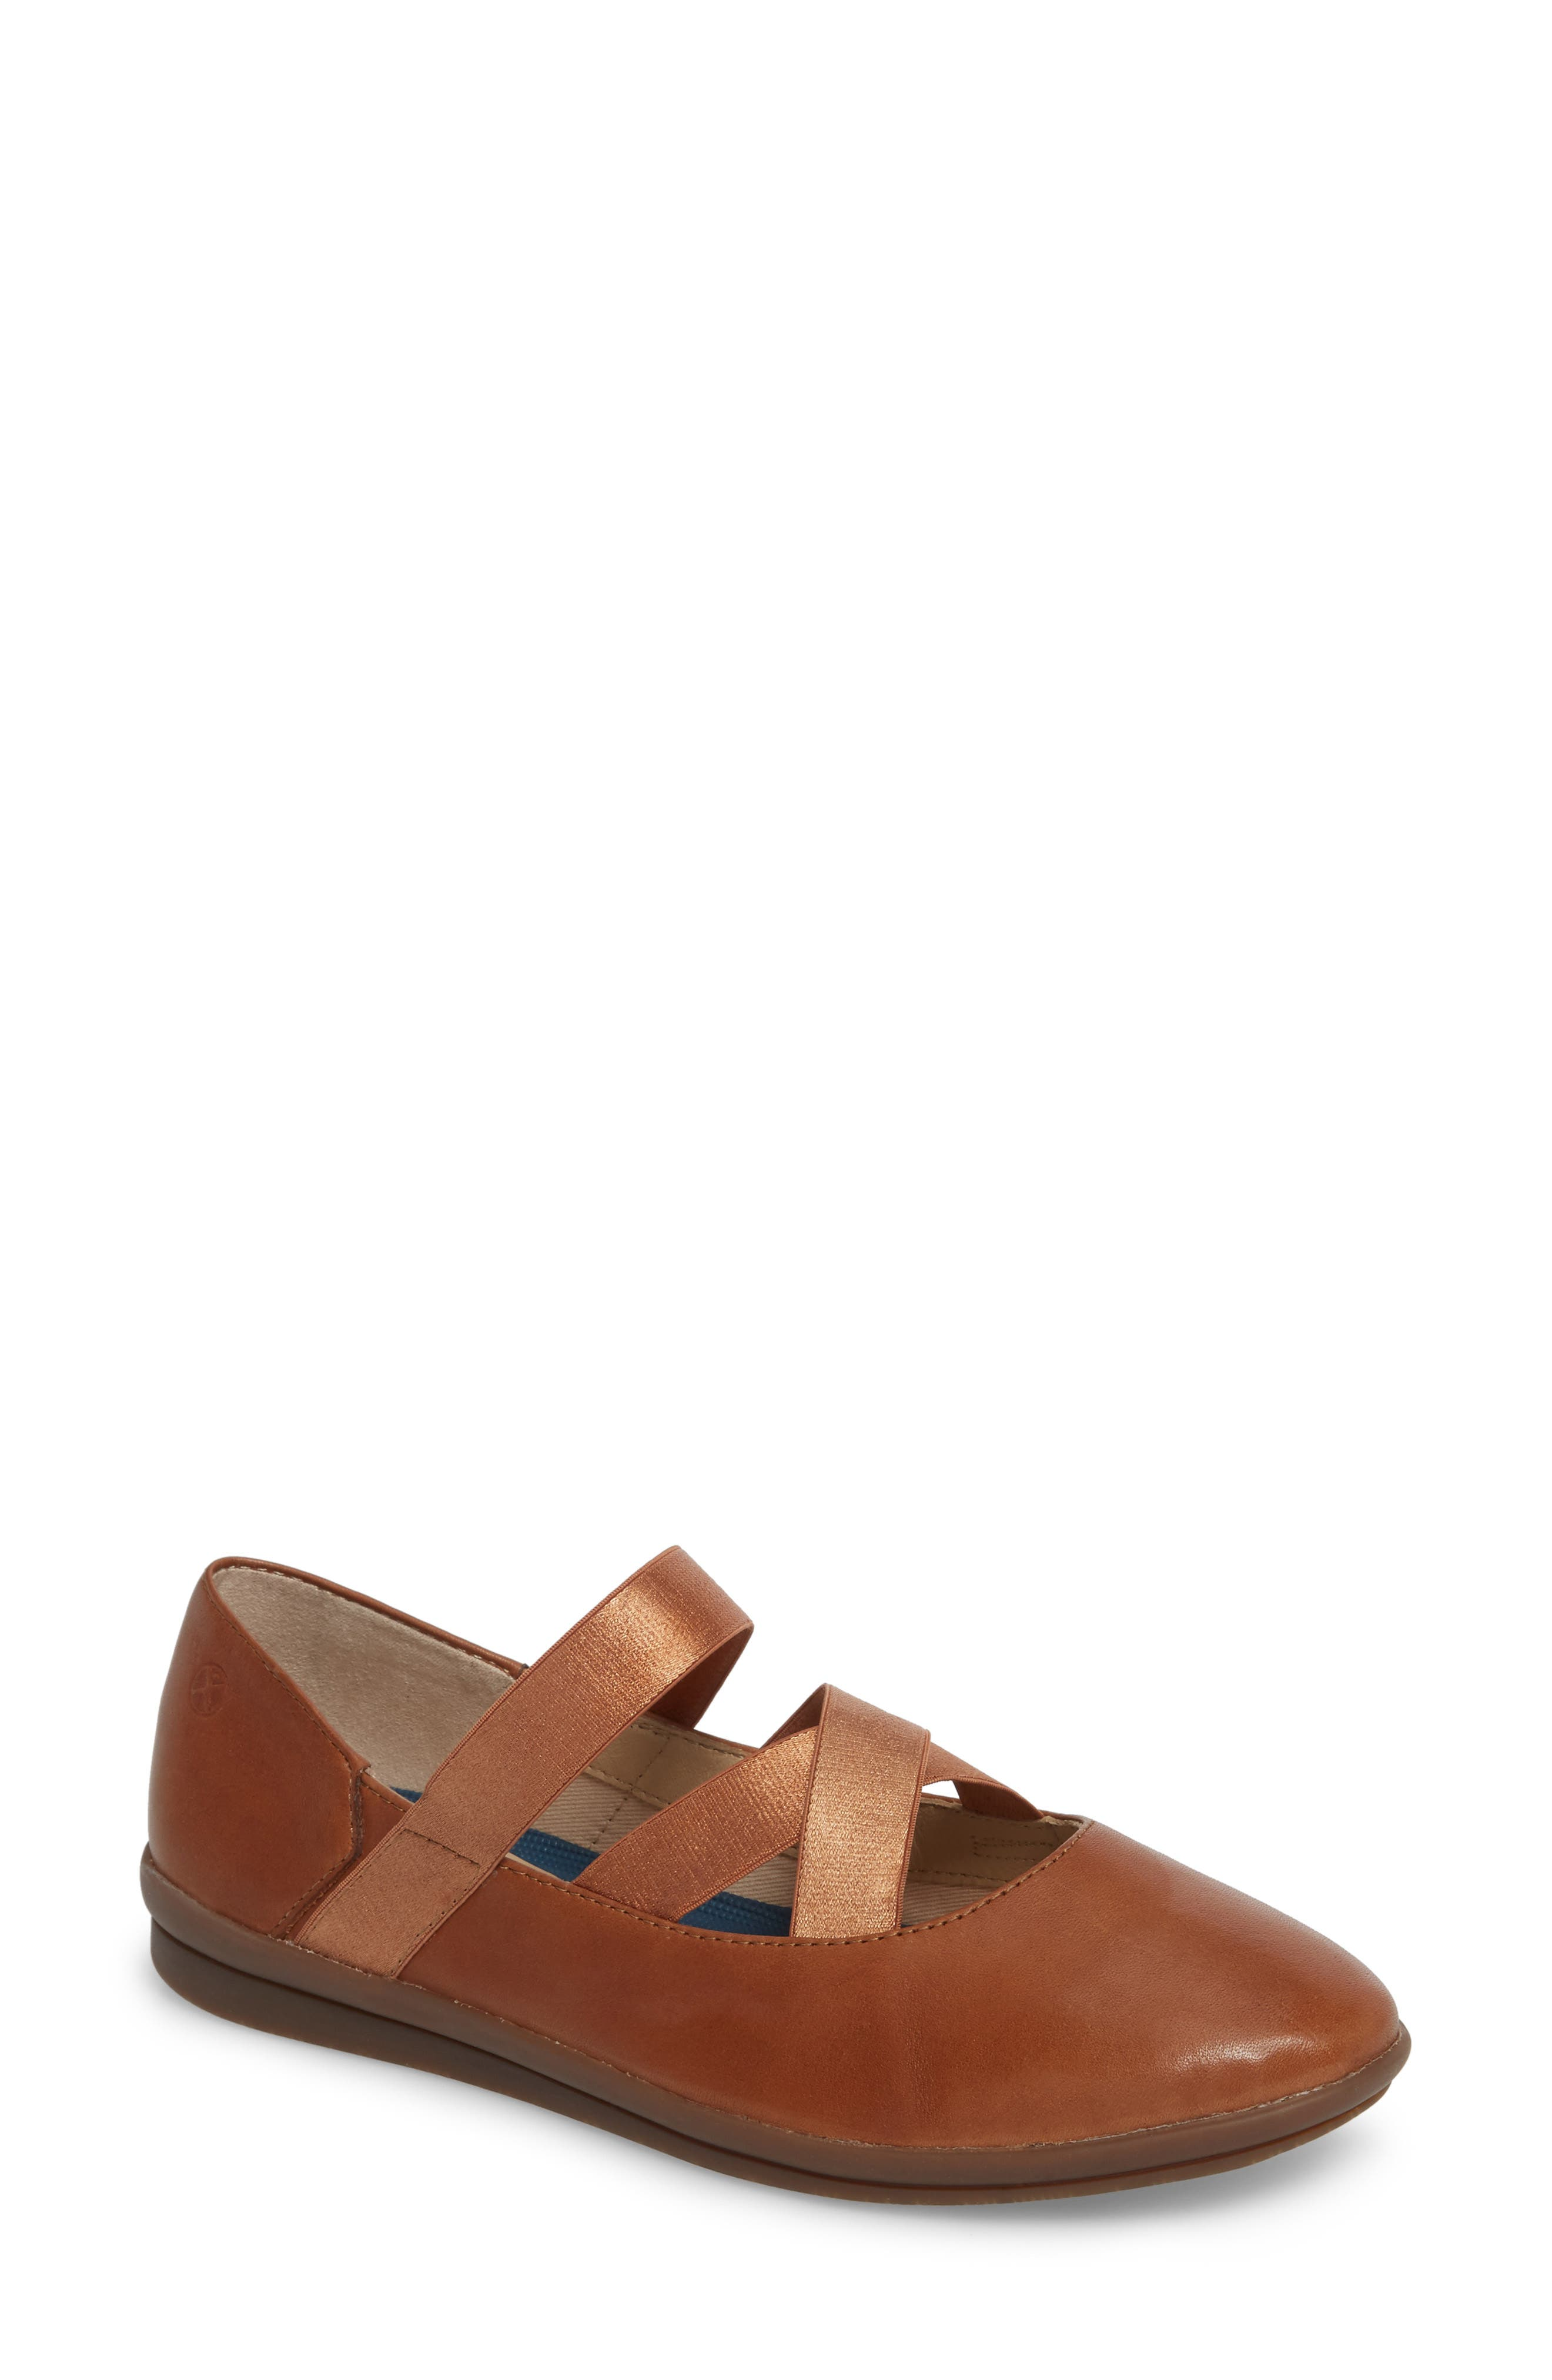 Meree Madrine Cross Strap Flat,                             Main thumbnail 1, color,